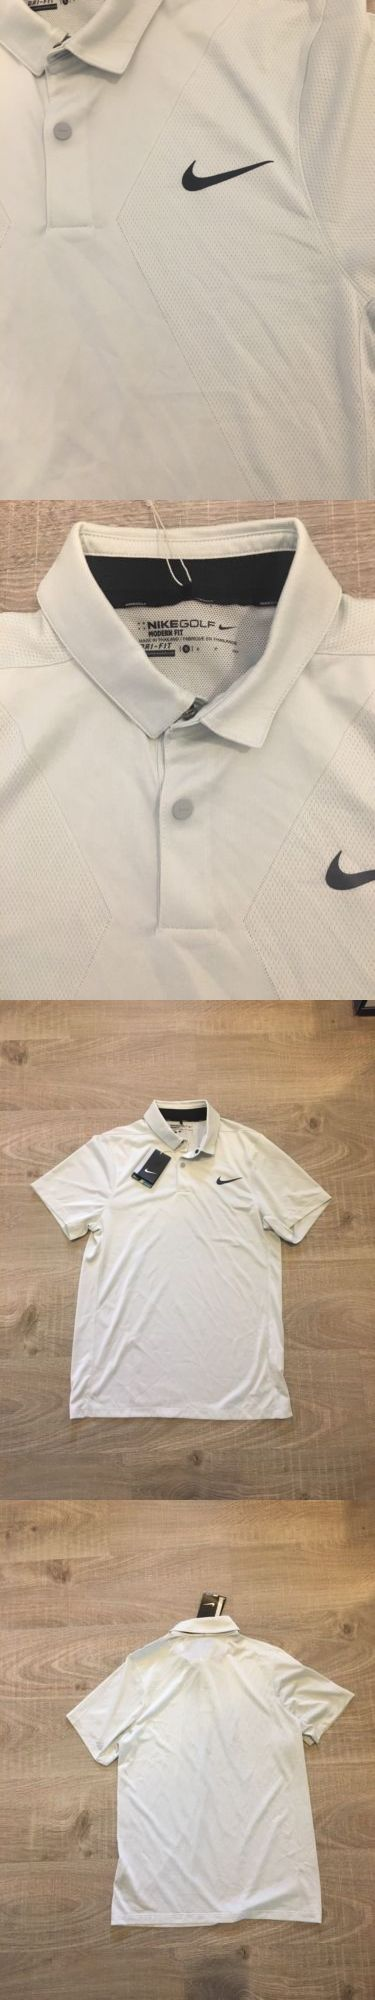 Athletic Apparel 137084: Nike Golf Men S Modern Fit White Collar Polo Shirt, Size Small Msrp $85 -> BUY IT NOW ONLY: $45 on eBay!